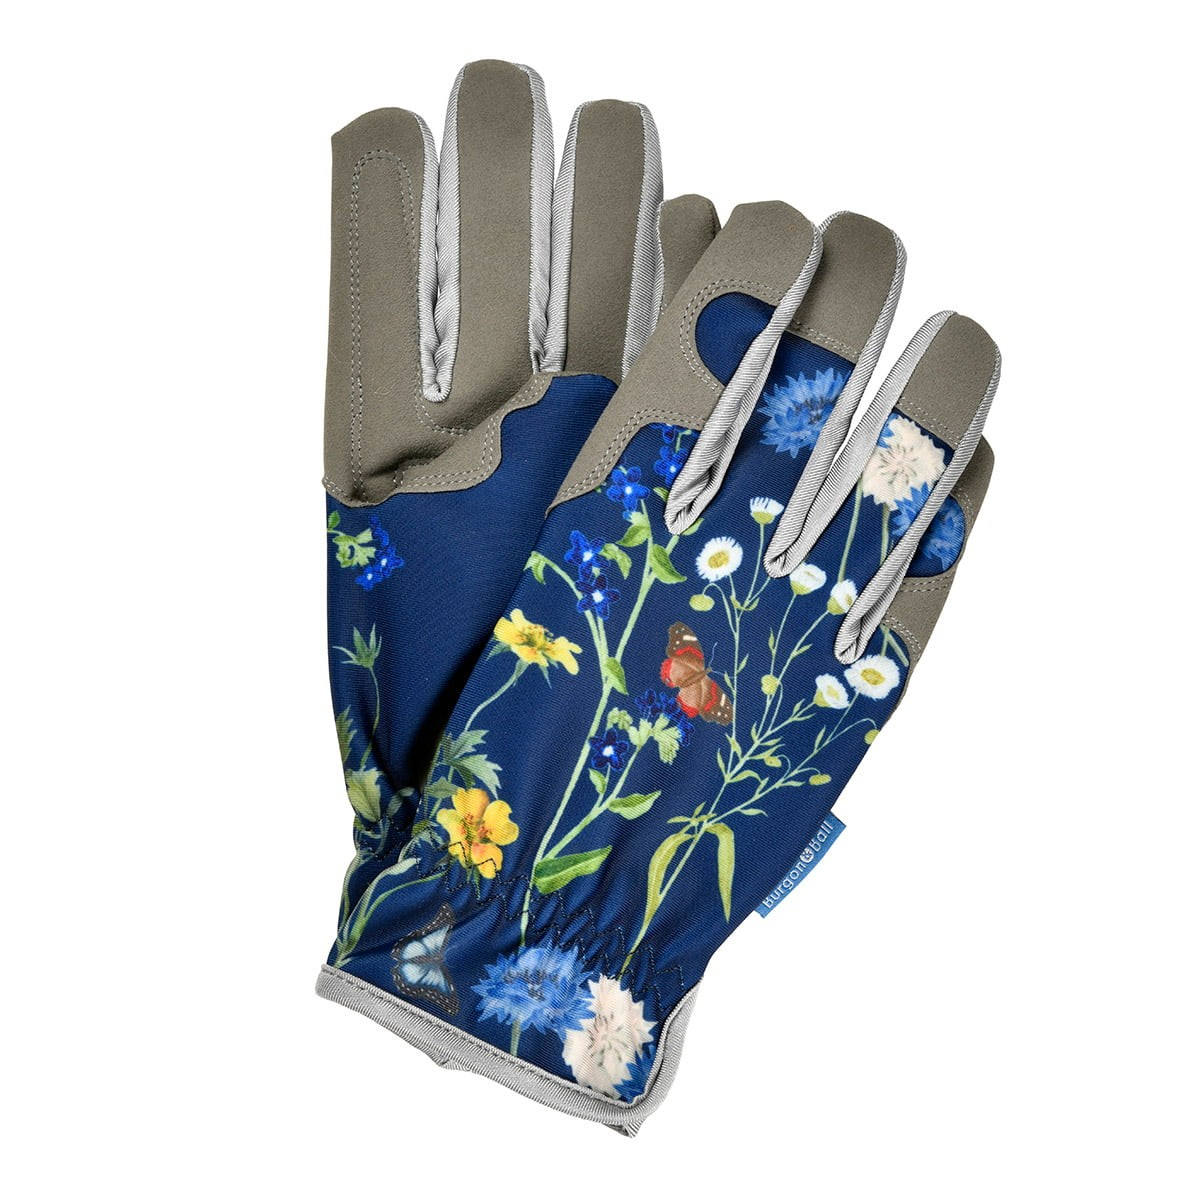 Burgon and Ball Garden Gloves - British Meadow